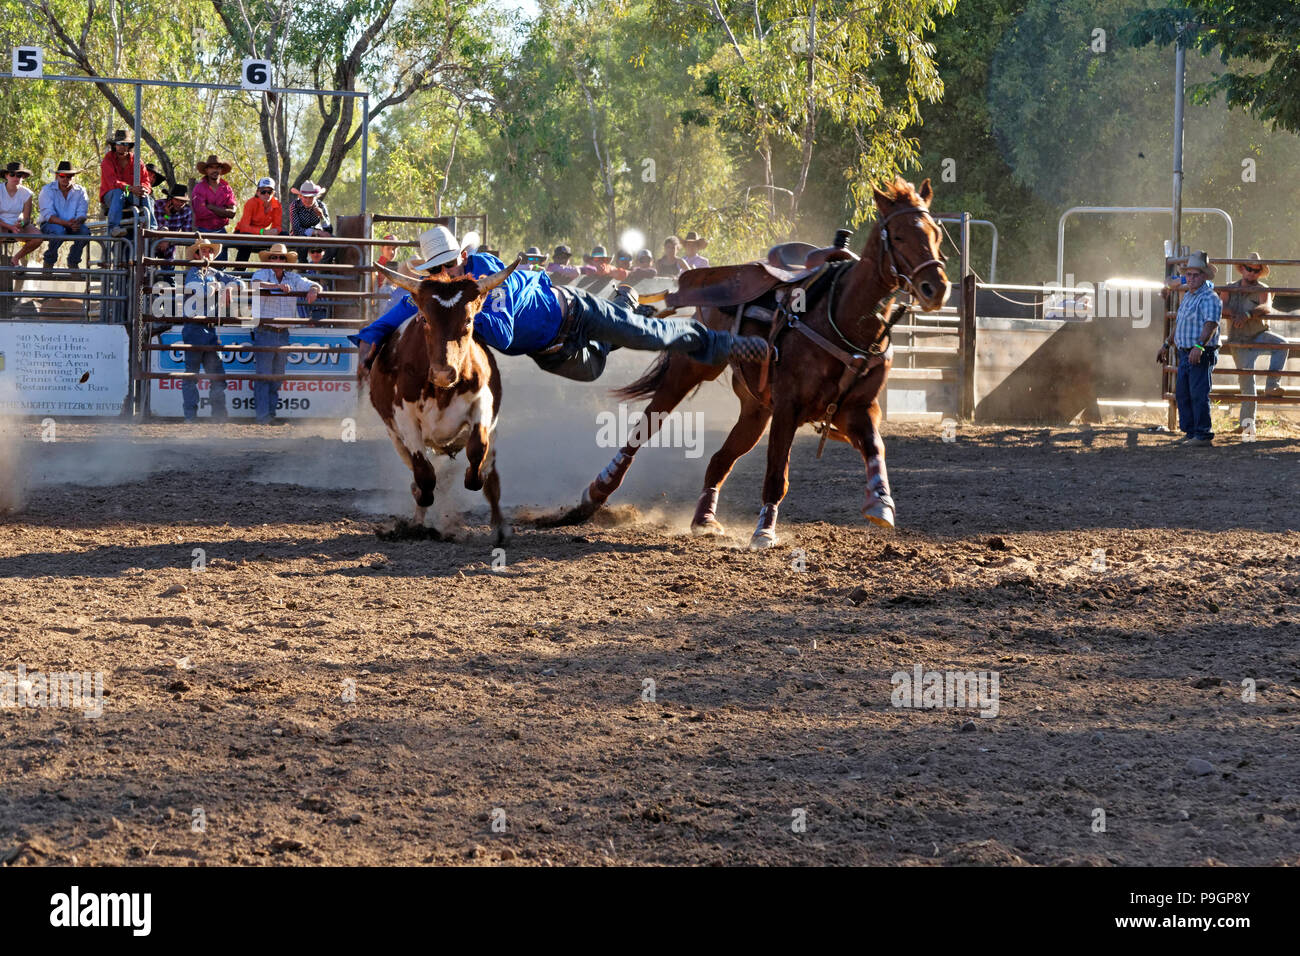 Cowboy leaping from horse to bring  a steer to ground at the Fitzroy crossing rodeo show, Fitzroy crossing, Kimberley,Northwest Australia - Stock Image